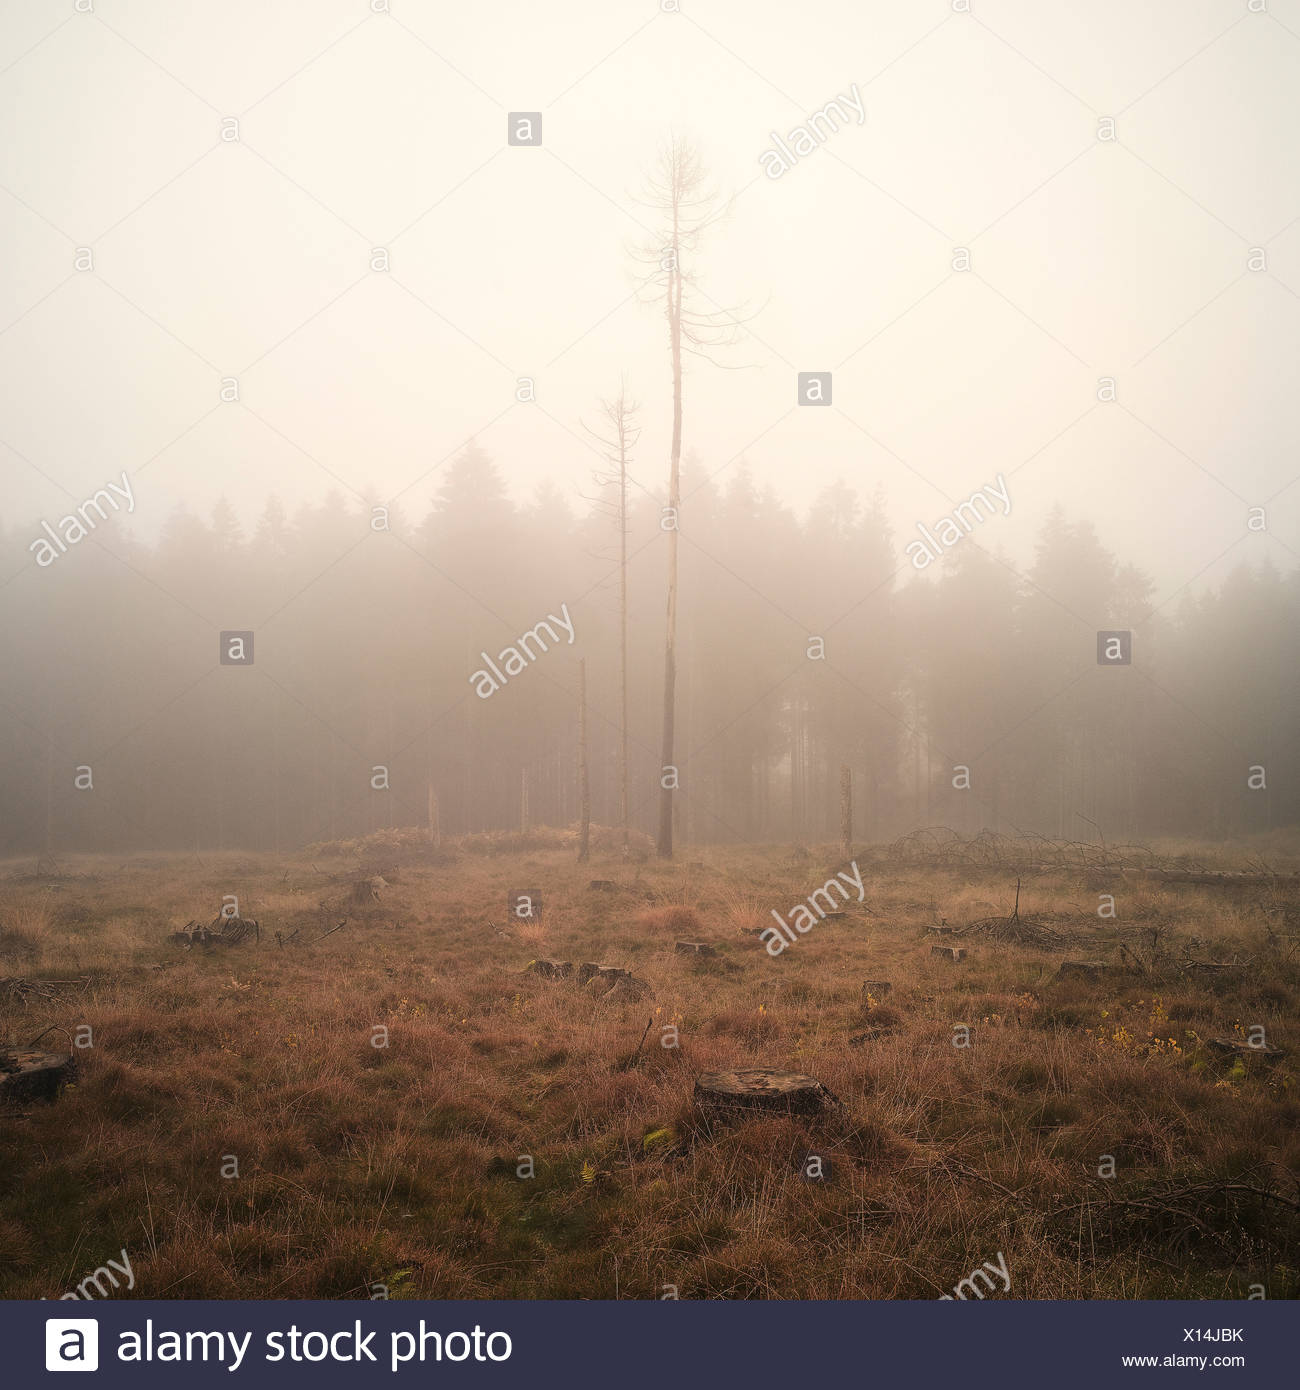 Bare trees in misty forest - Stock Image